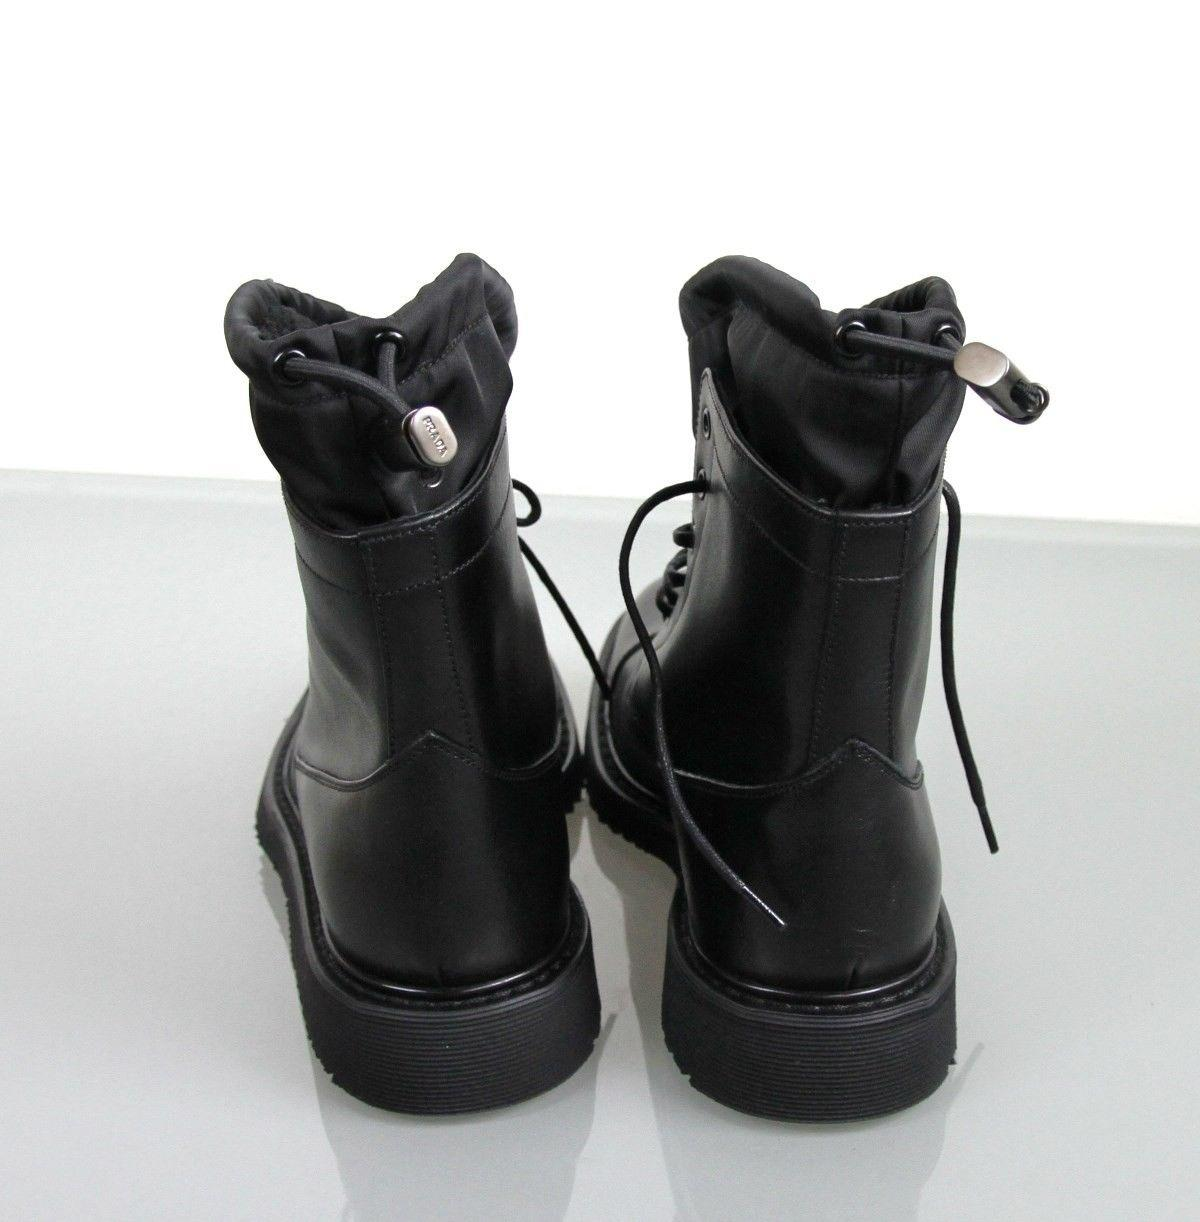 Prada Sport Leather Lace-Up Booties new styles buy cheap largest supplier 0mquKK